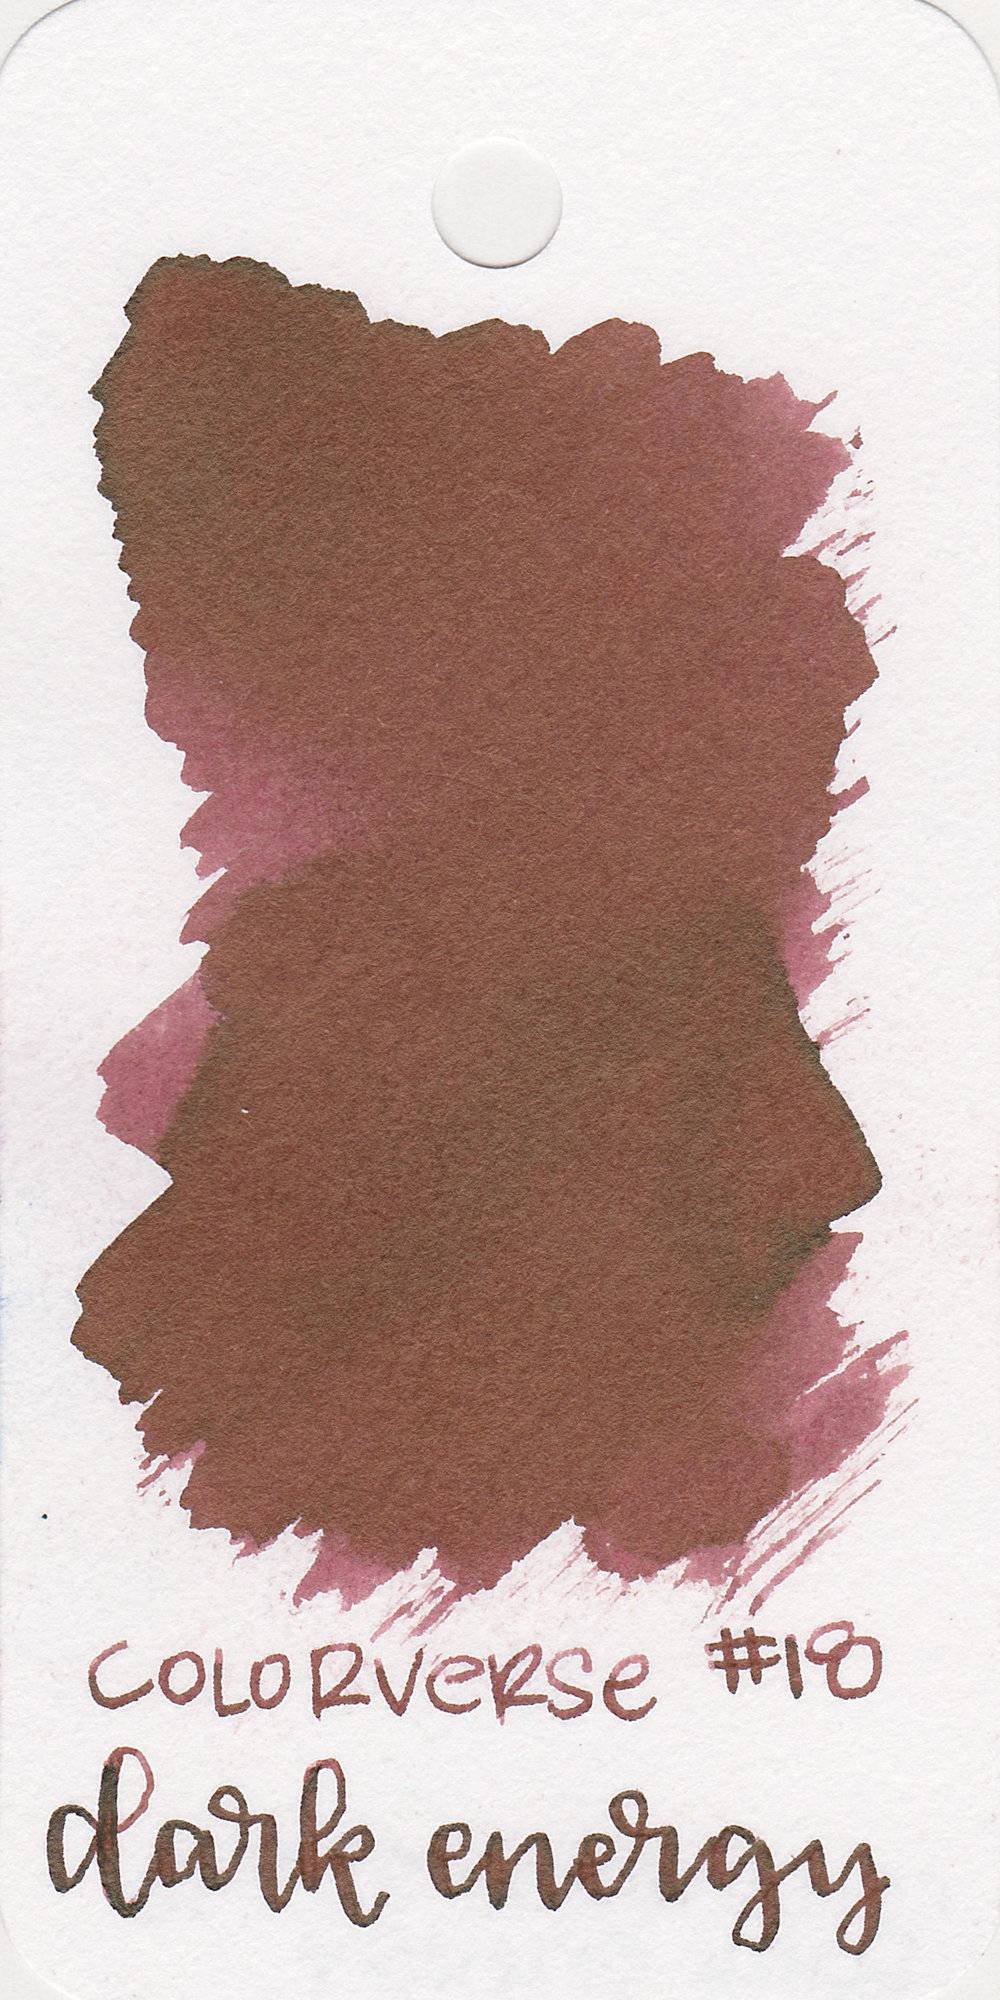 The color: - Dark Energy is somewhere between red and brown.